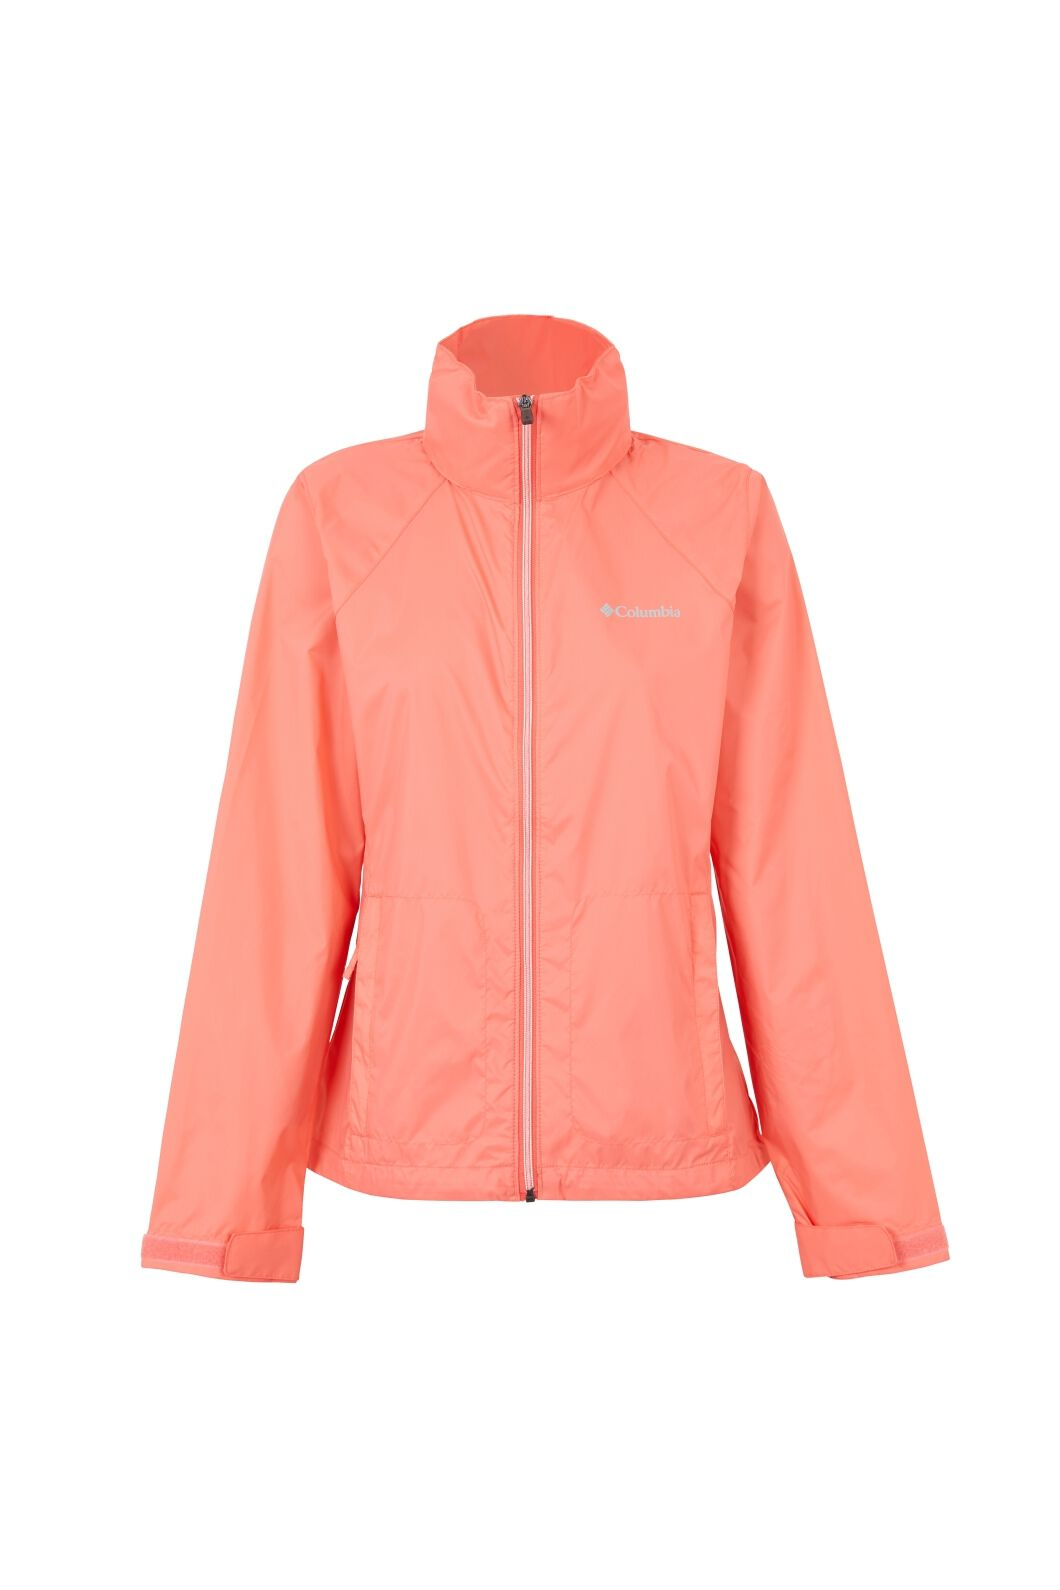 Columbia Women's Switchback II Fleece Jacket, BLUSH PINK, hi-res